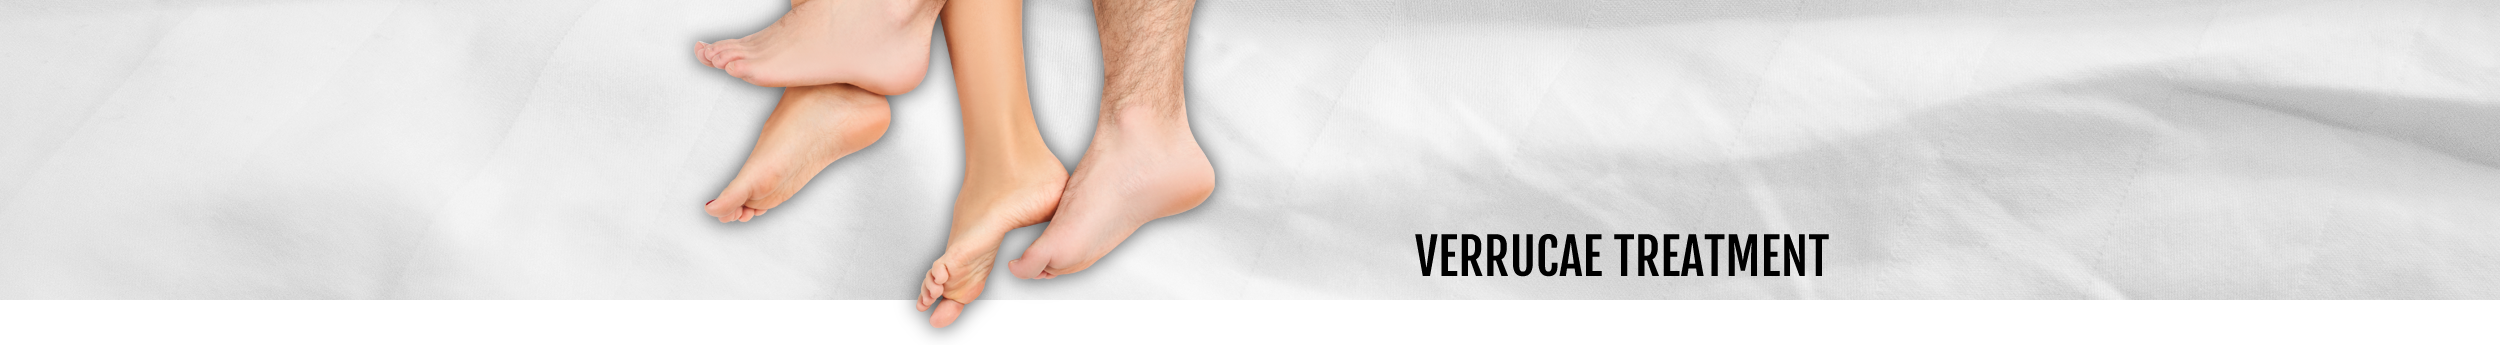 Verrucae treatment header for the Walk IN Foot Clinic in central London